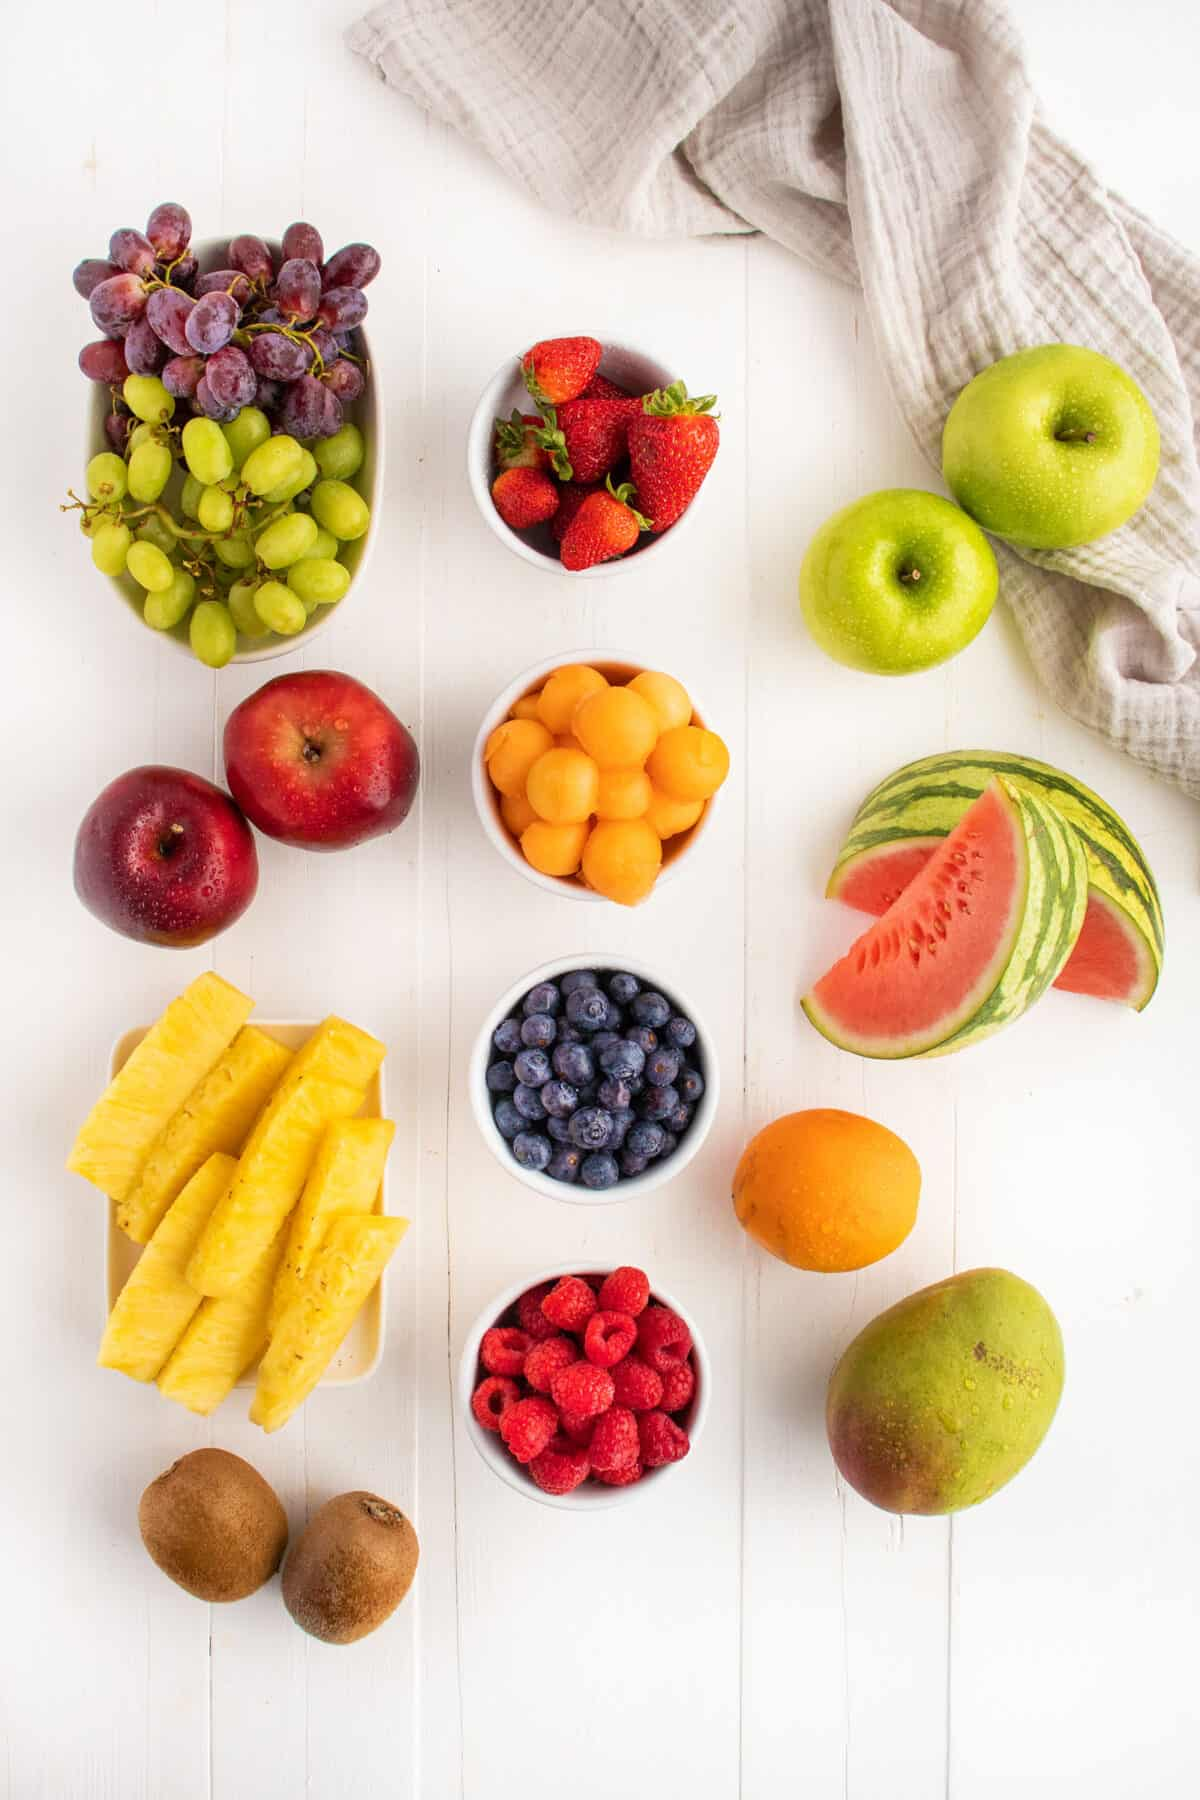 types of fruit for a fruit platter, raspberries, blueberries, grapes, apples, watermelon, oranges, mangoes, pineapple and kiwis